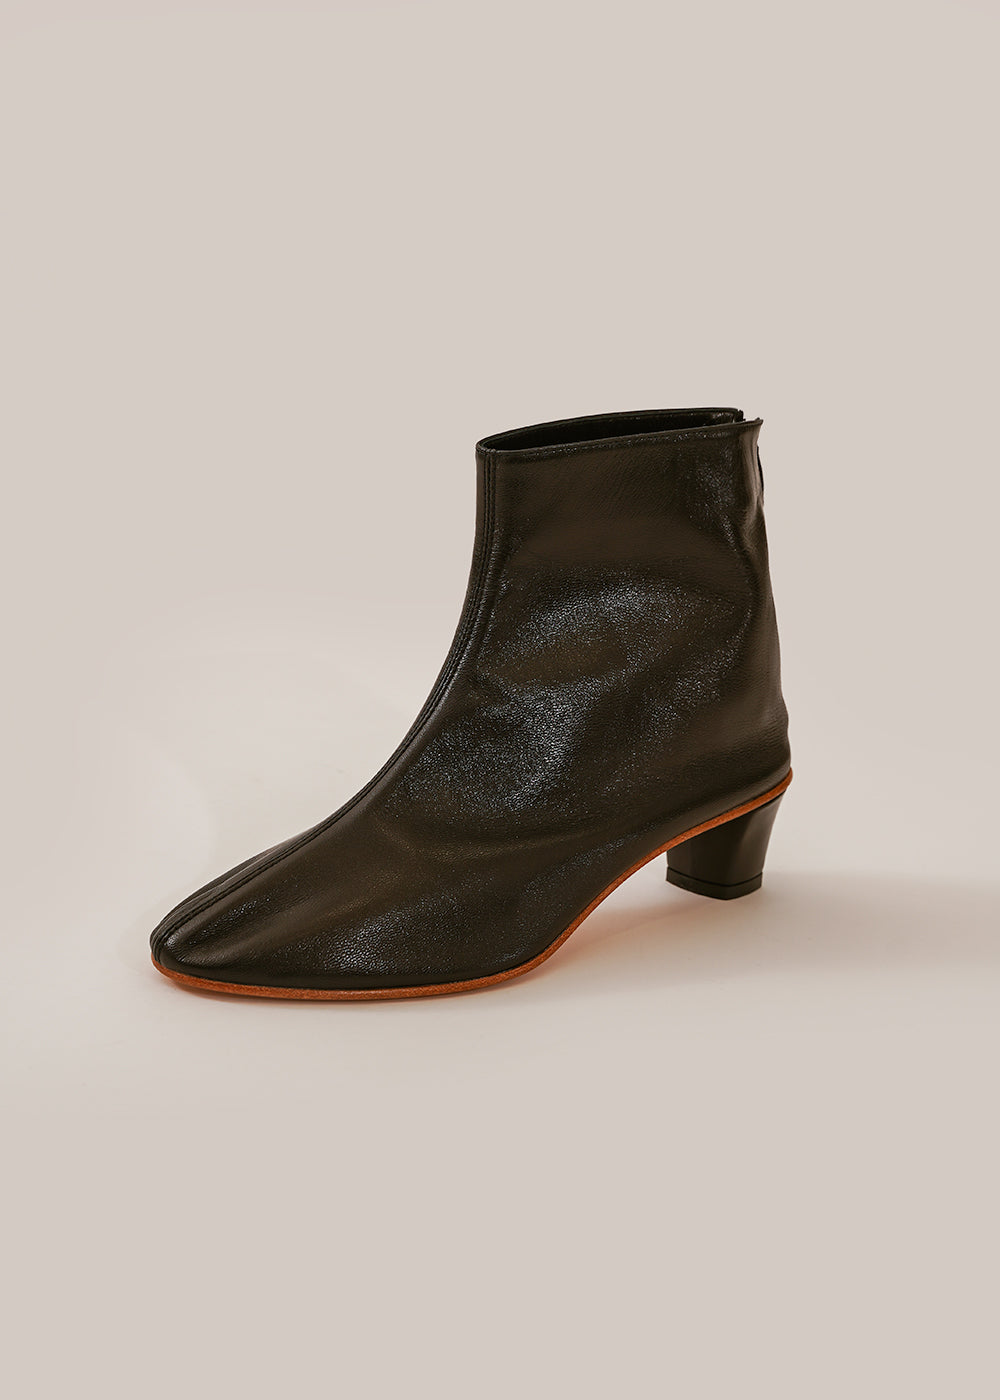 Black High Leone Boots - New Classics Studios